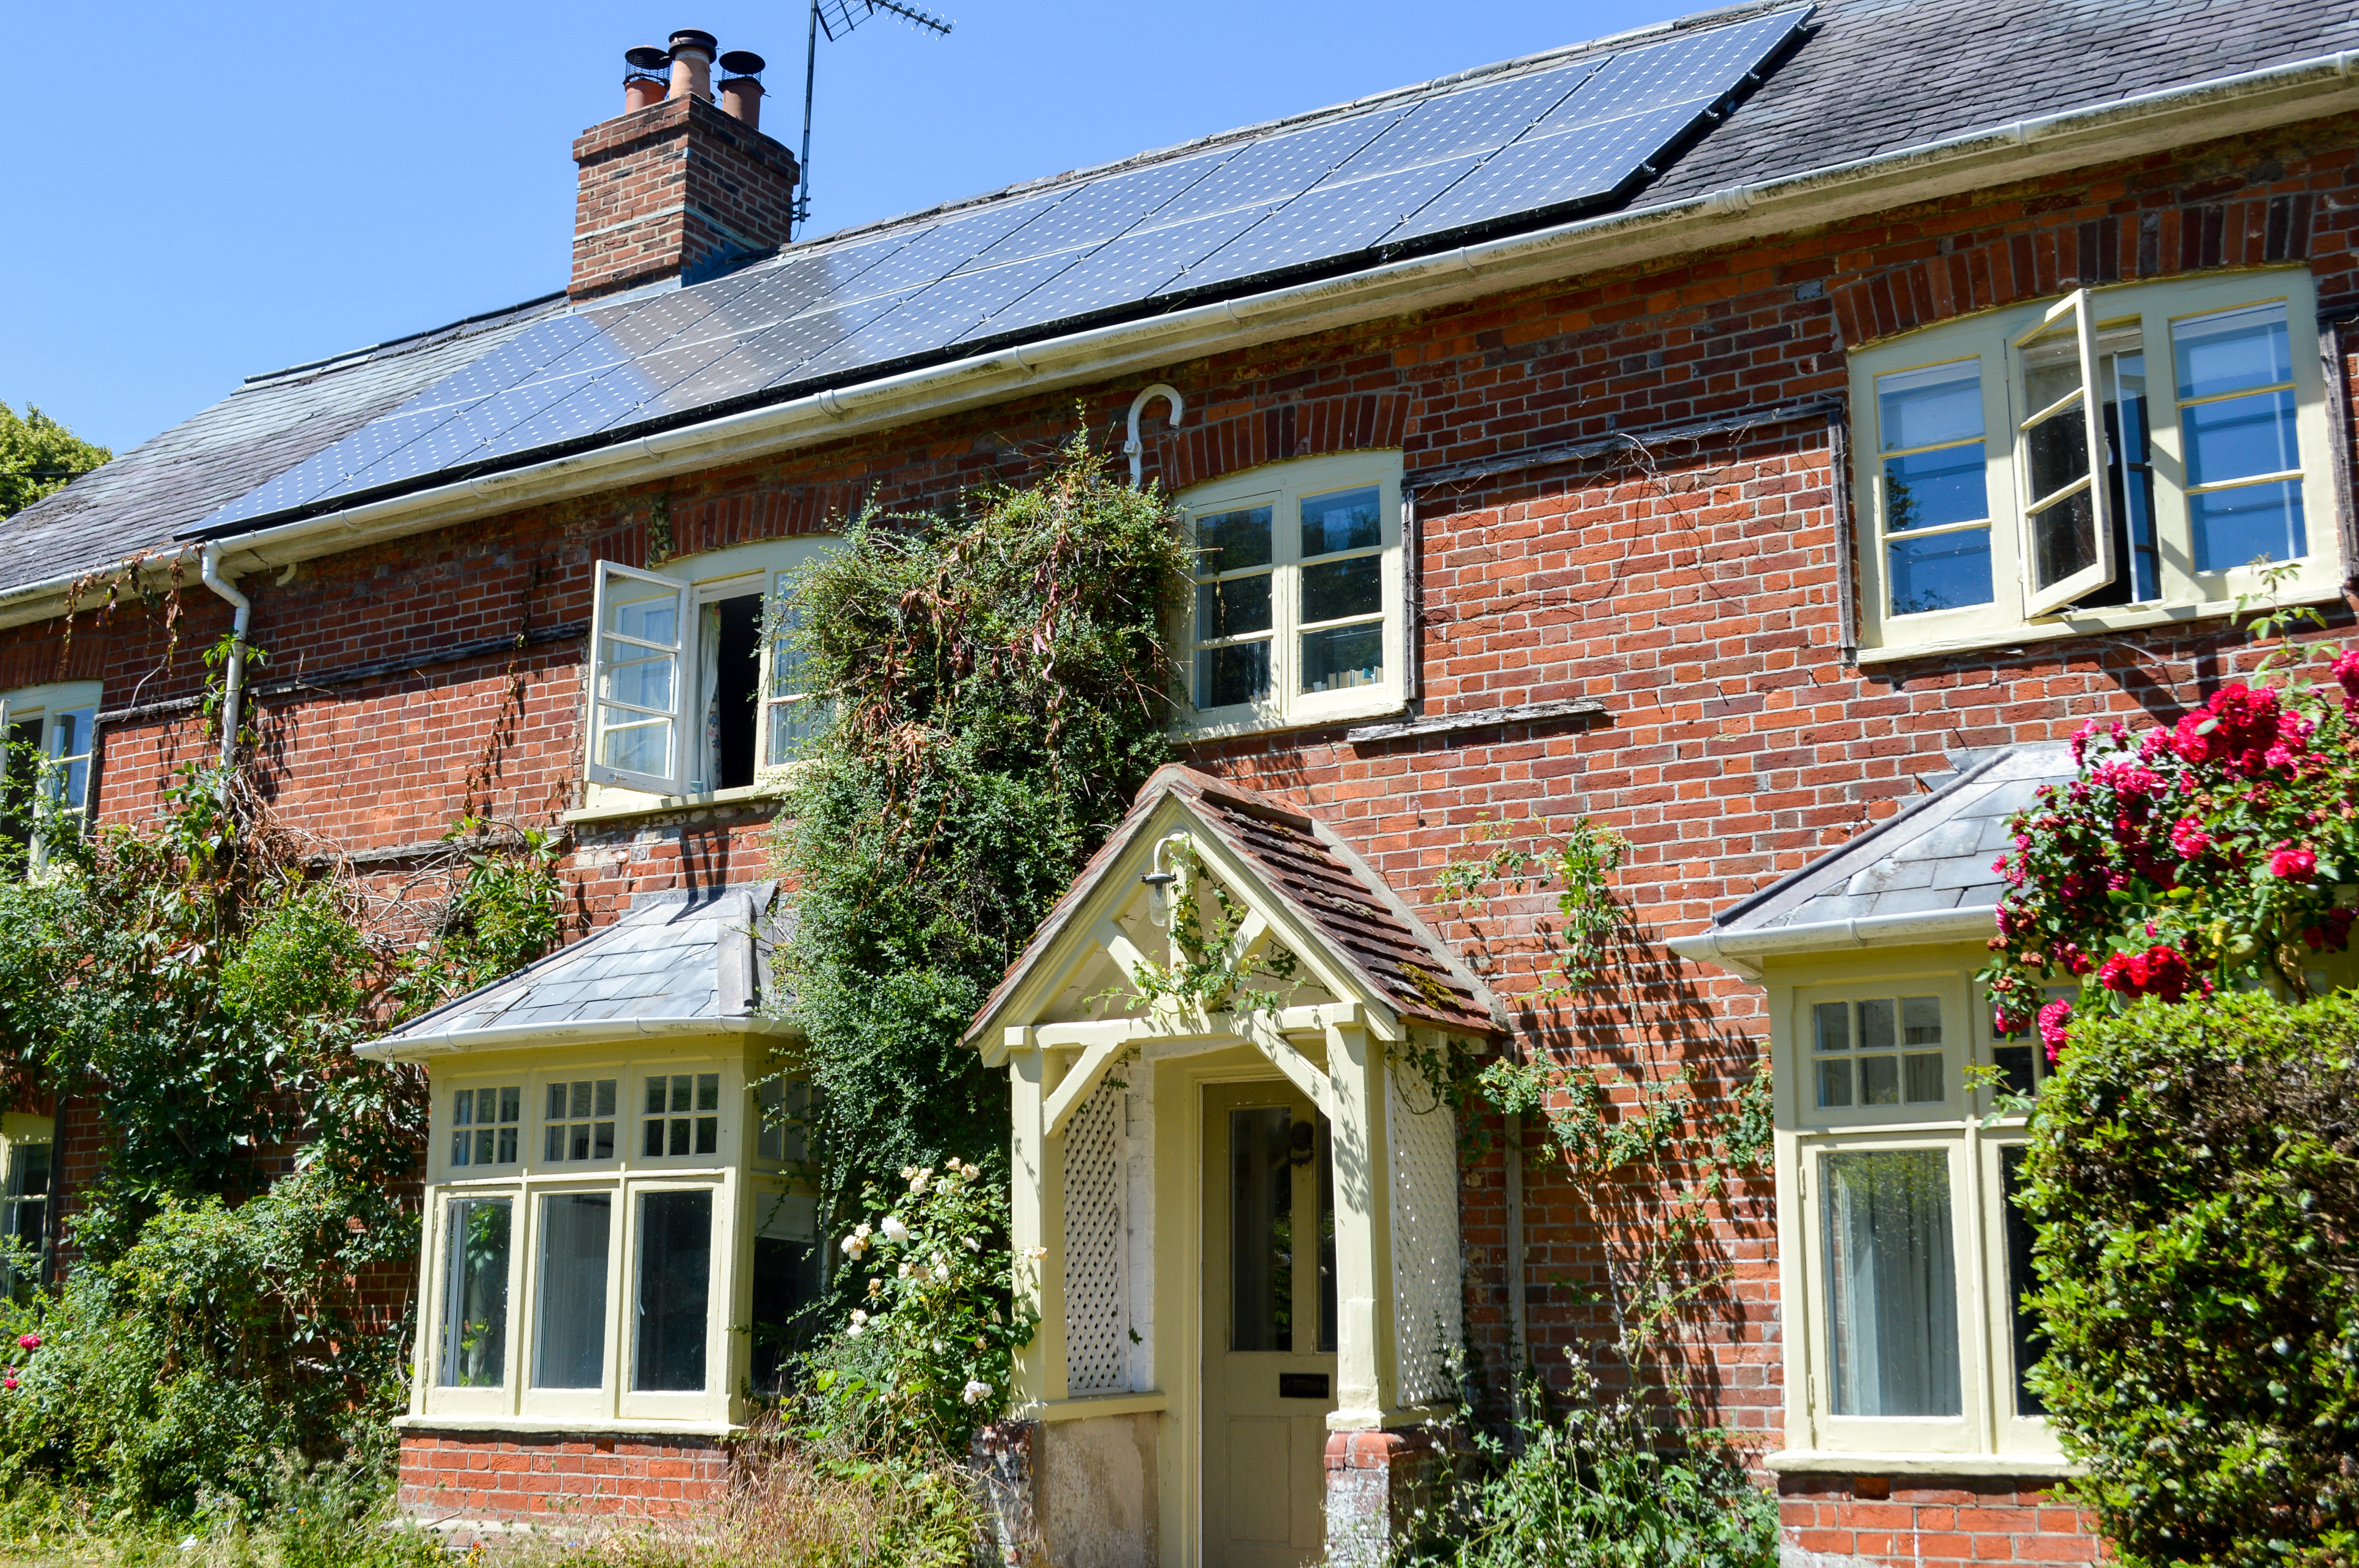 Case Study - Adding solar panels to a Hampshire home